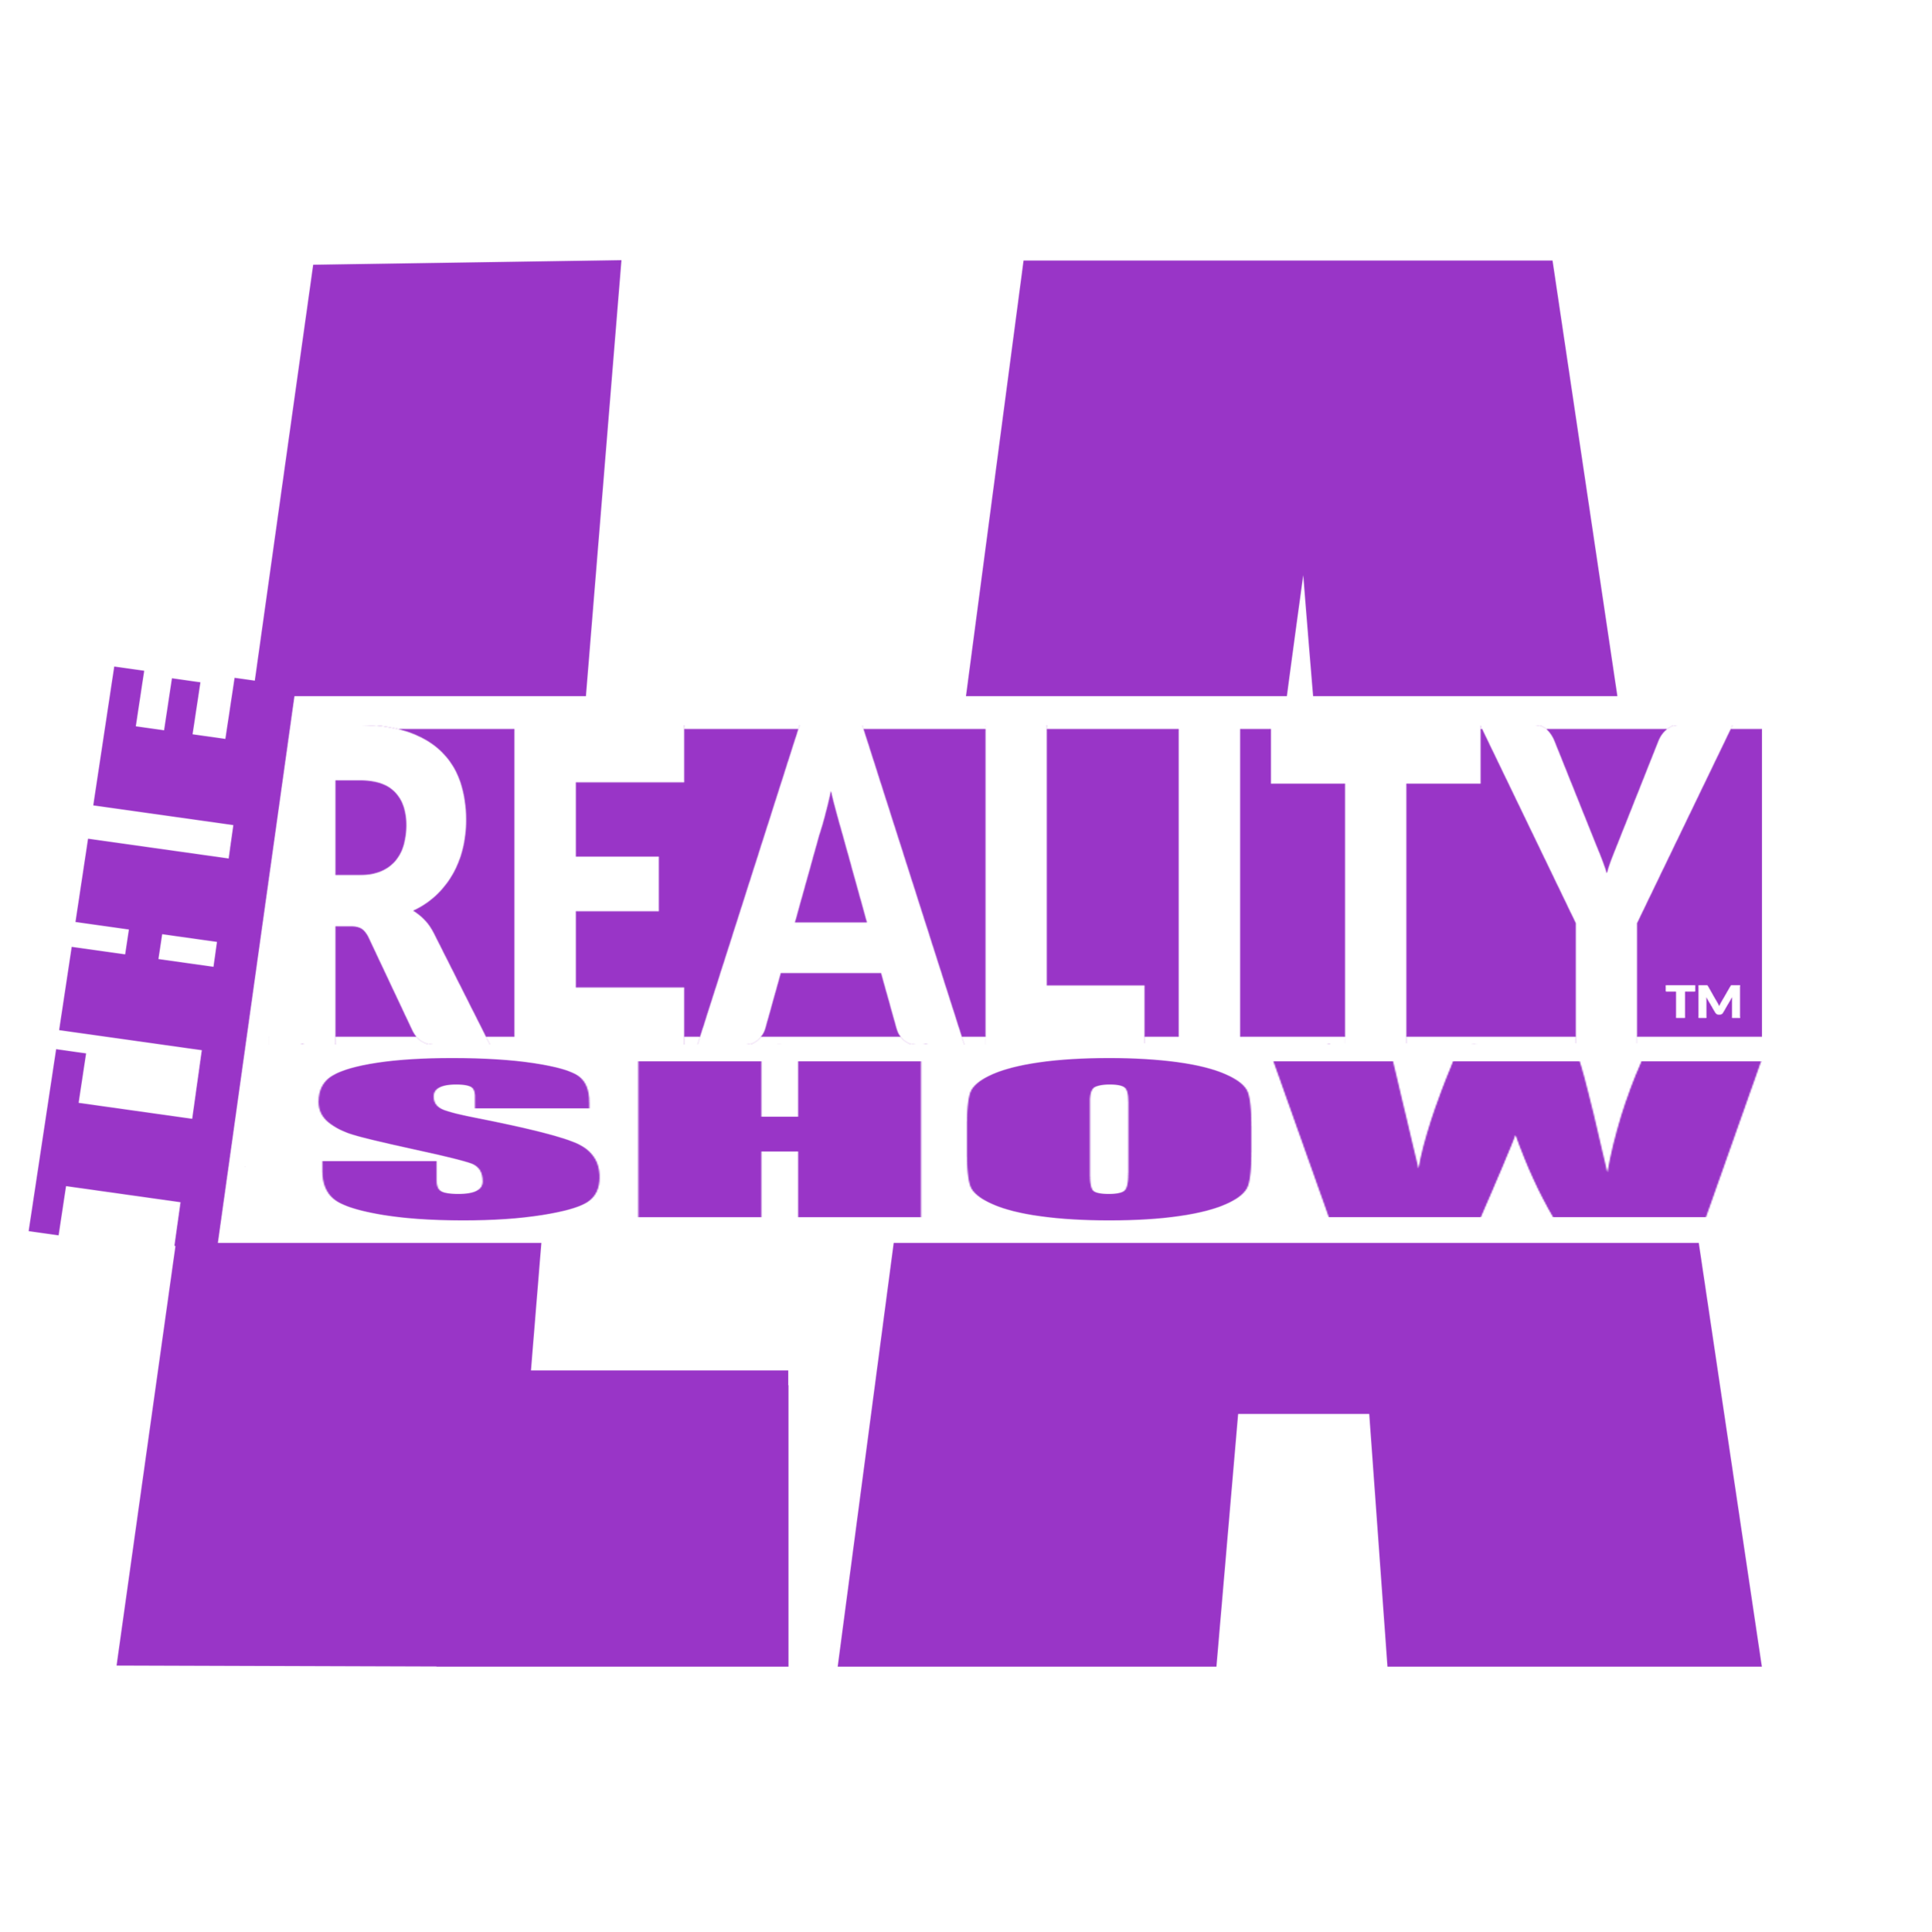 The-Reality-Show-Logo-5.3.png